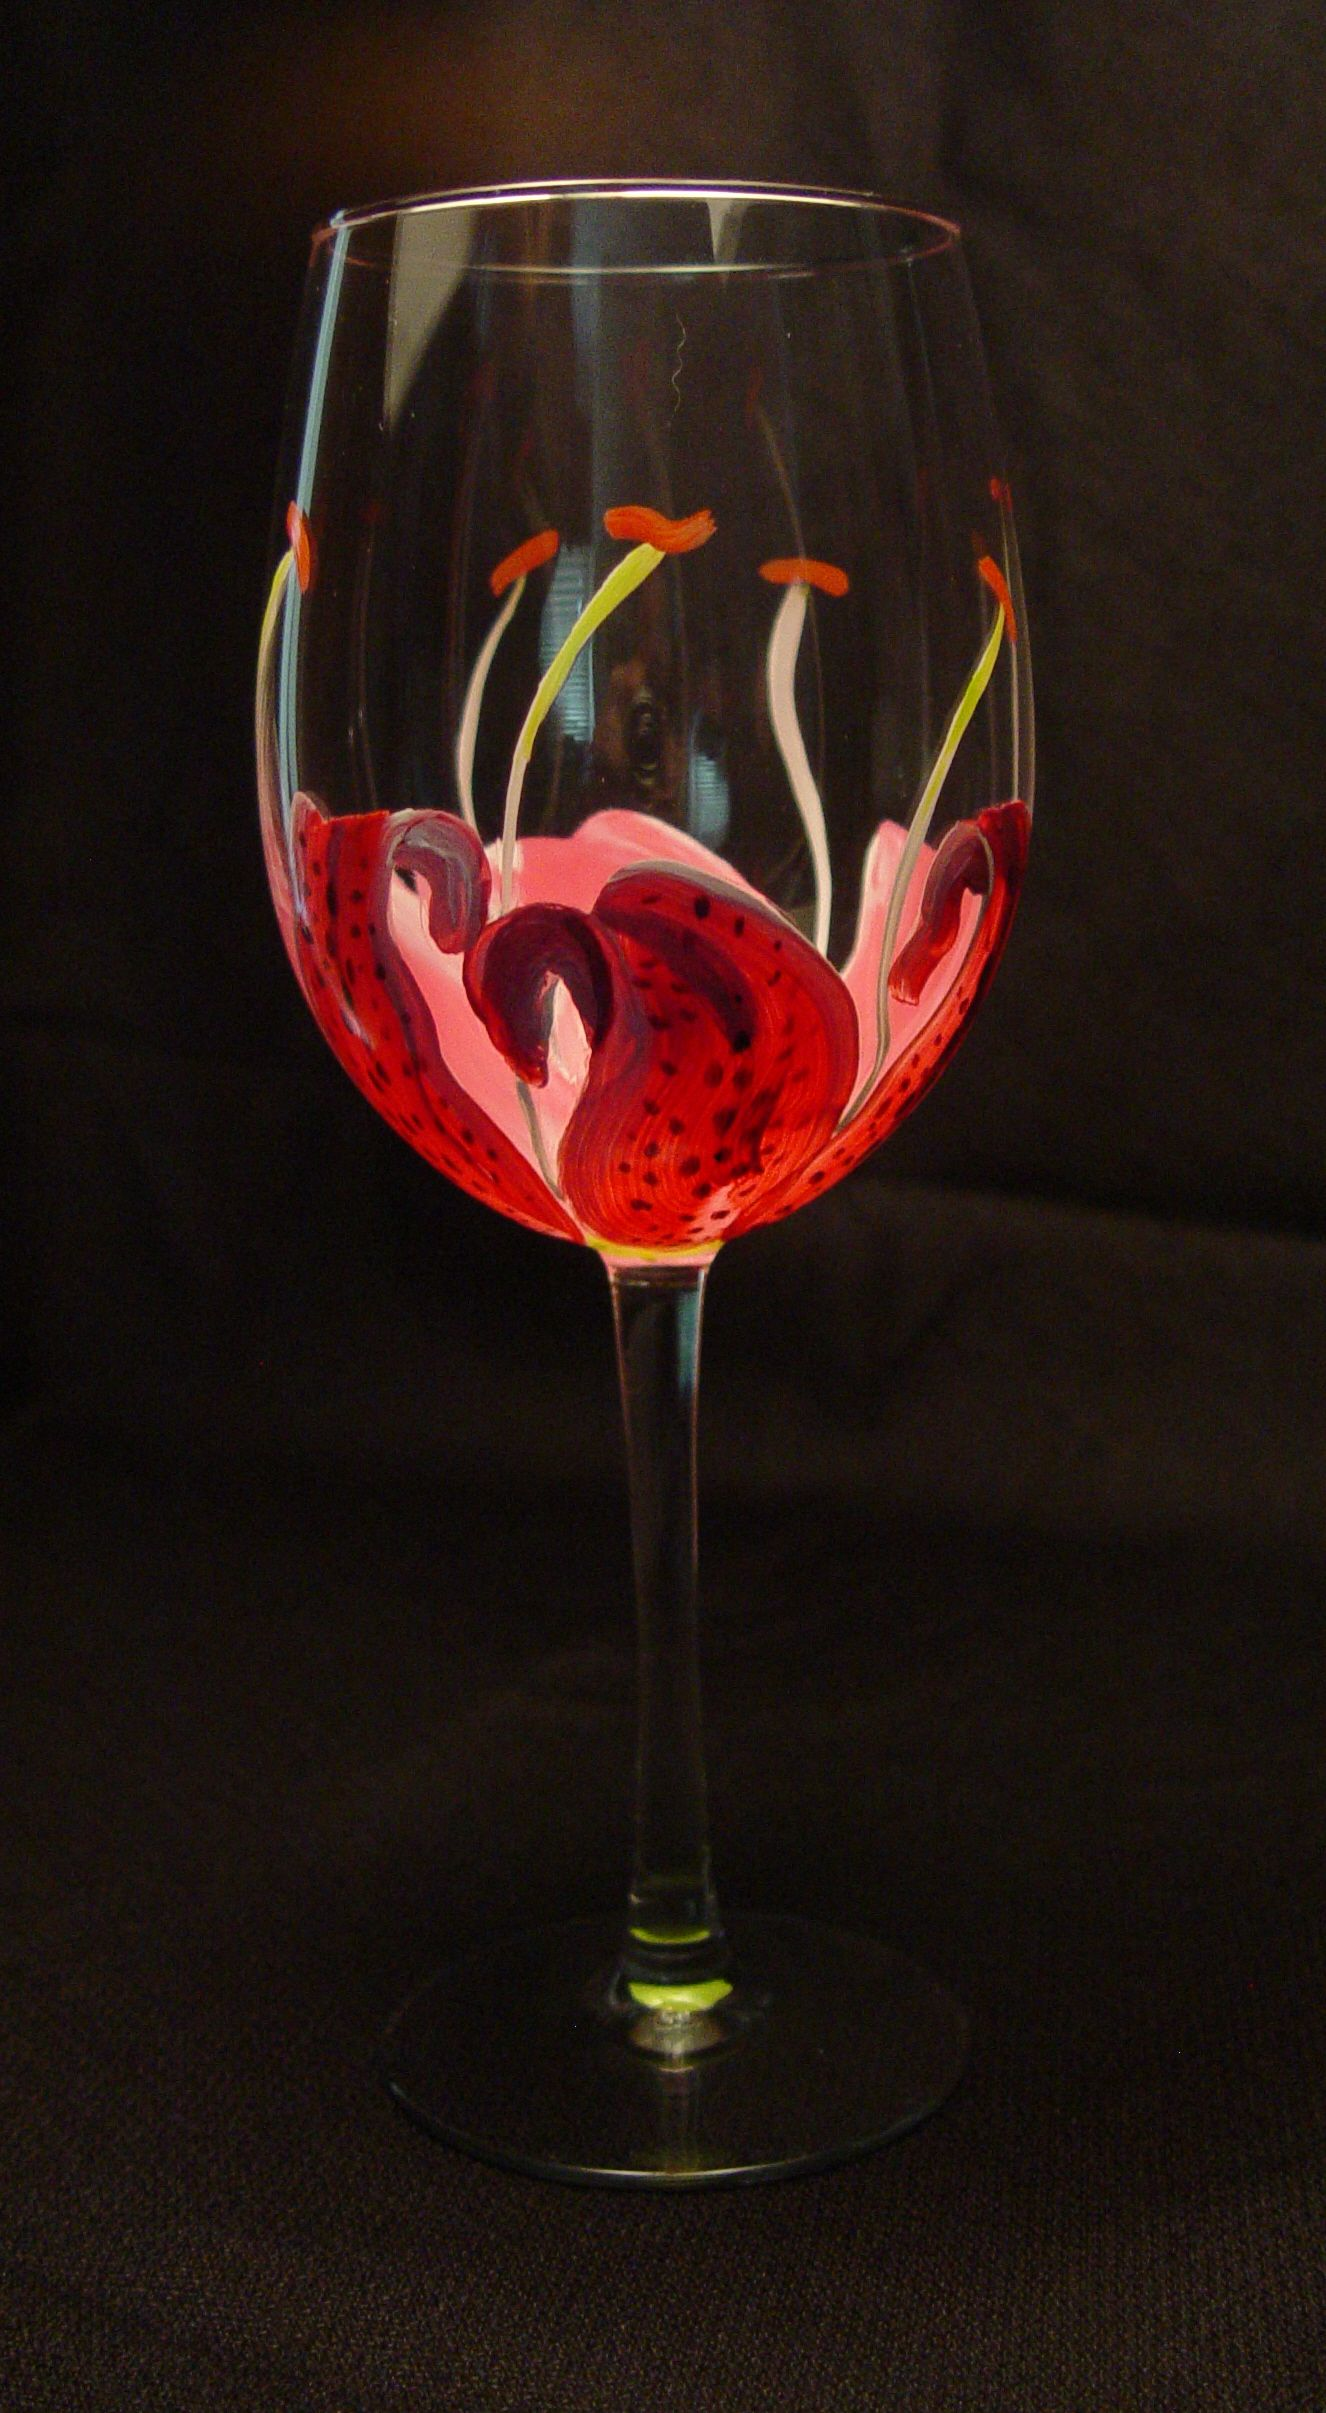 Pink Moon Gazer Lily Wine Glass Is Hand Painted To Look As Lovely View From The Inside As It Is Fro Painted Wine Glasses Hand Painted Wine Glasses Glass Paints